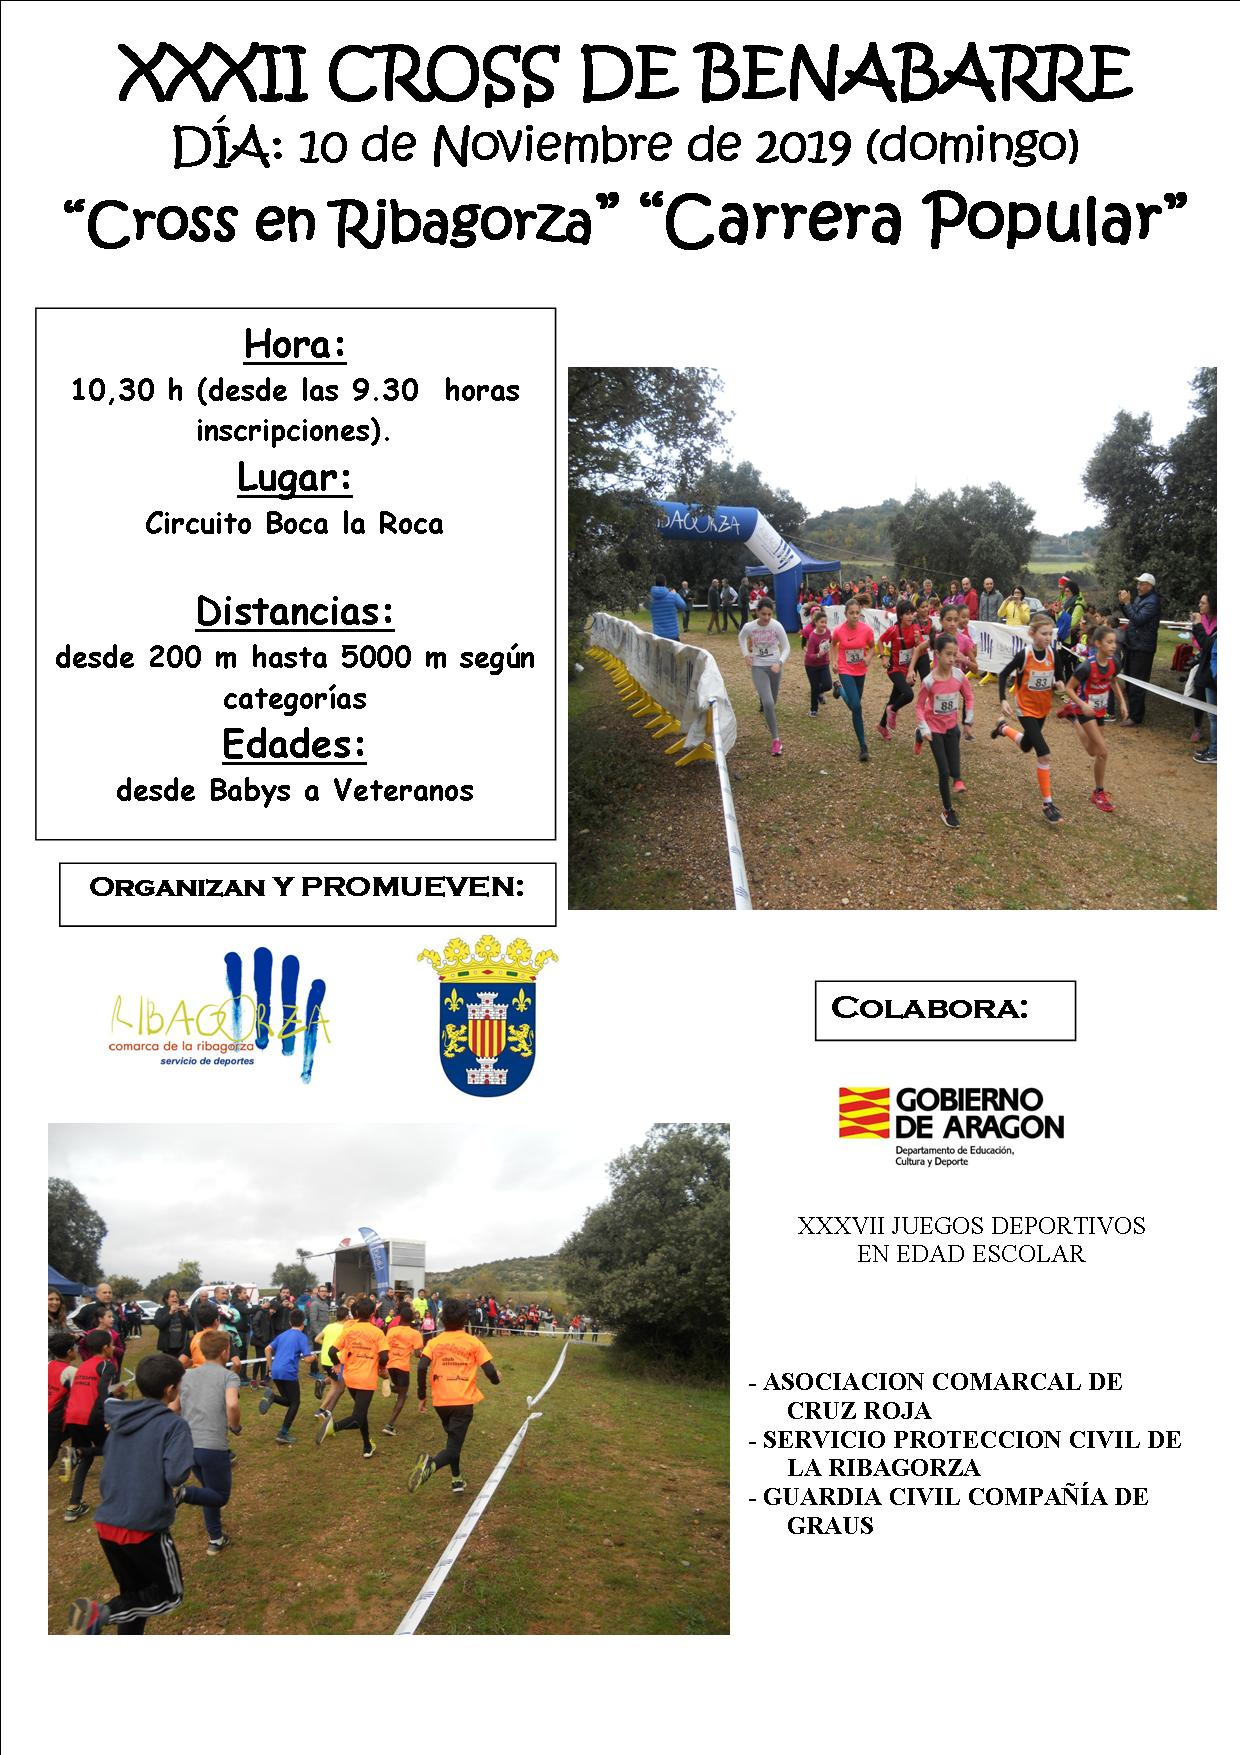 XXXII CROSS DE BENABARRE